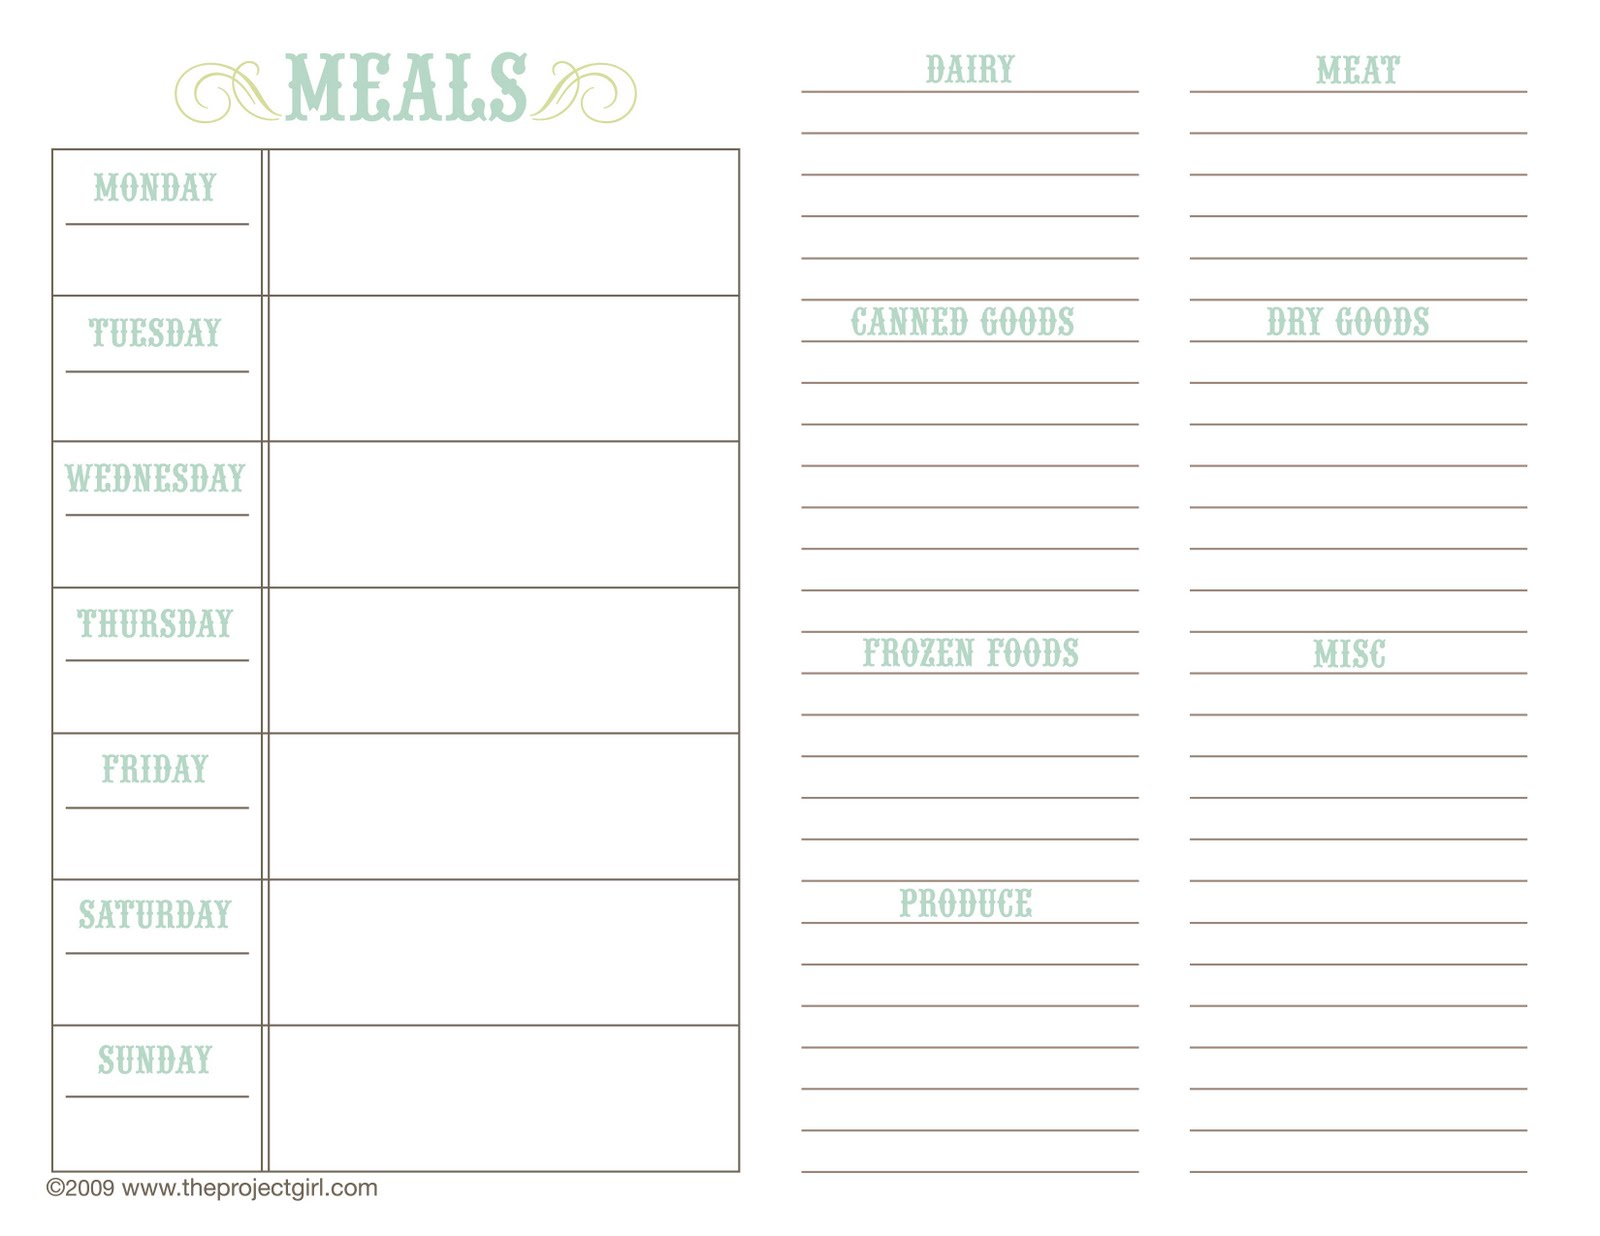 Meal planner calendar calendar template 2016 for Two week meal plan template